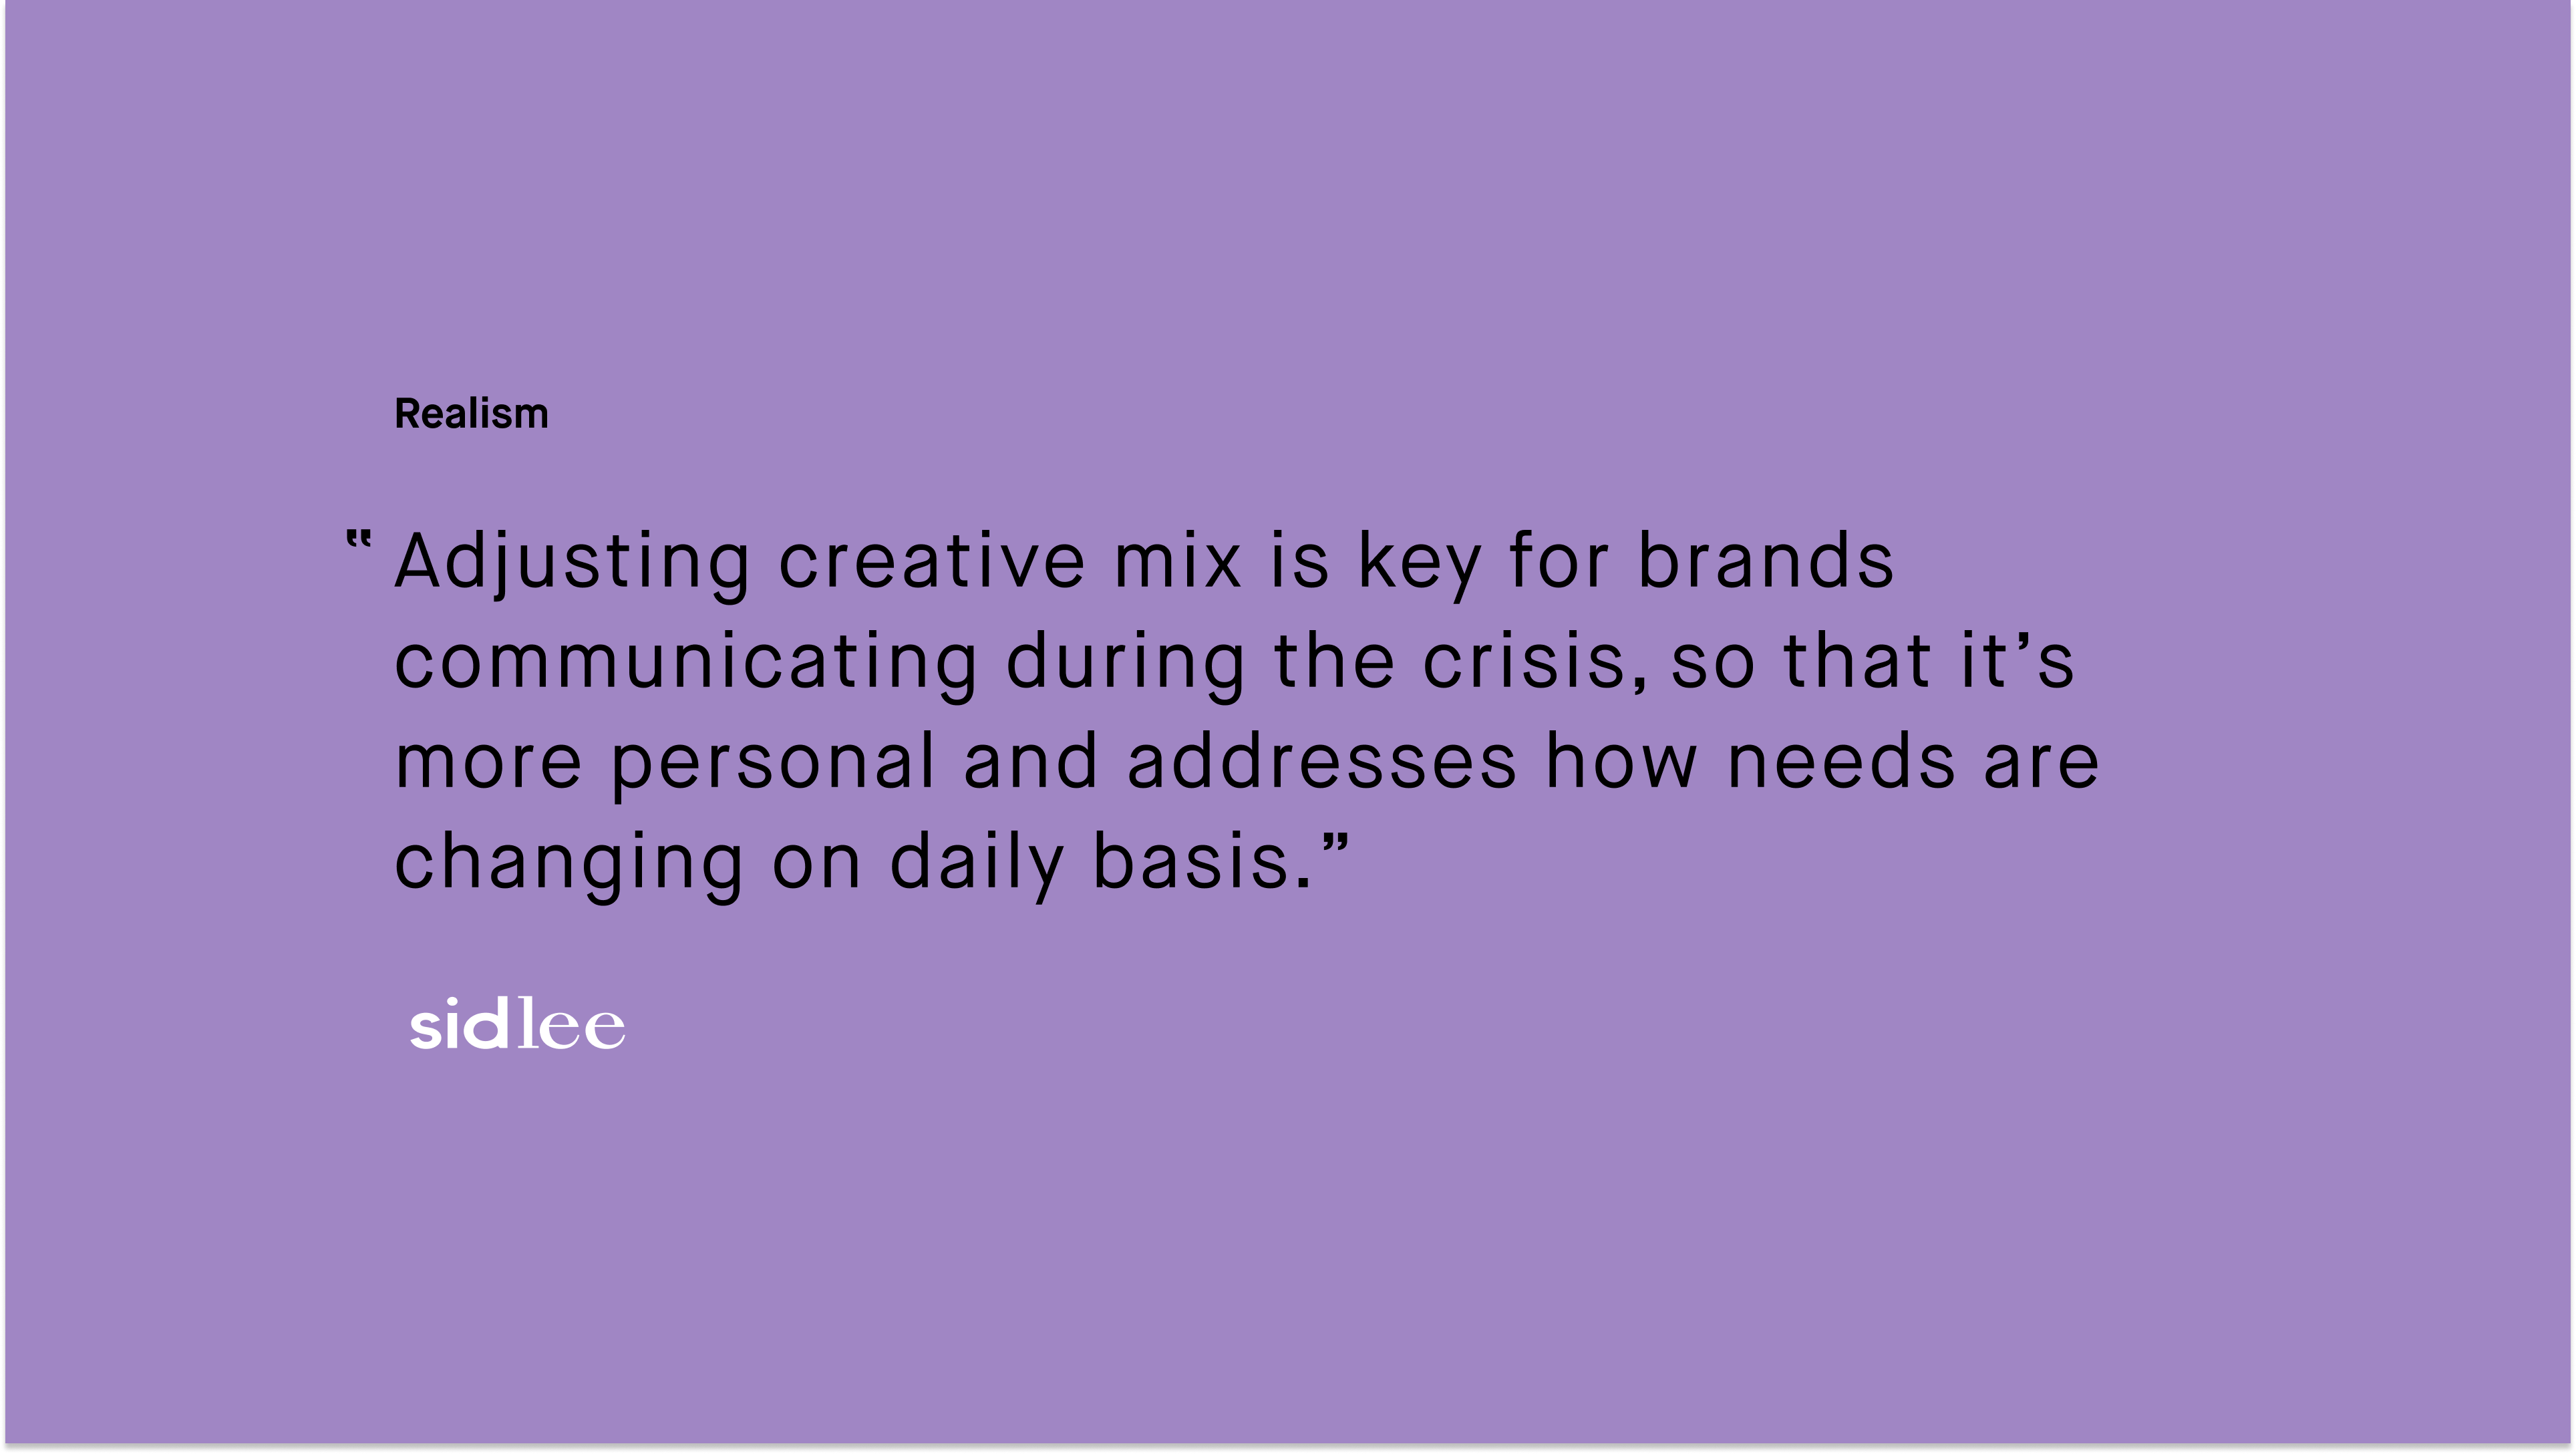 #paid_Sidlee_Adjusting creative mix is key for brands communicating during the crisis